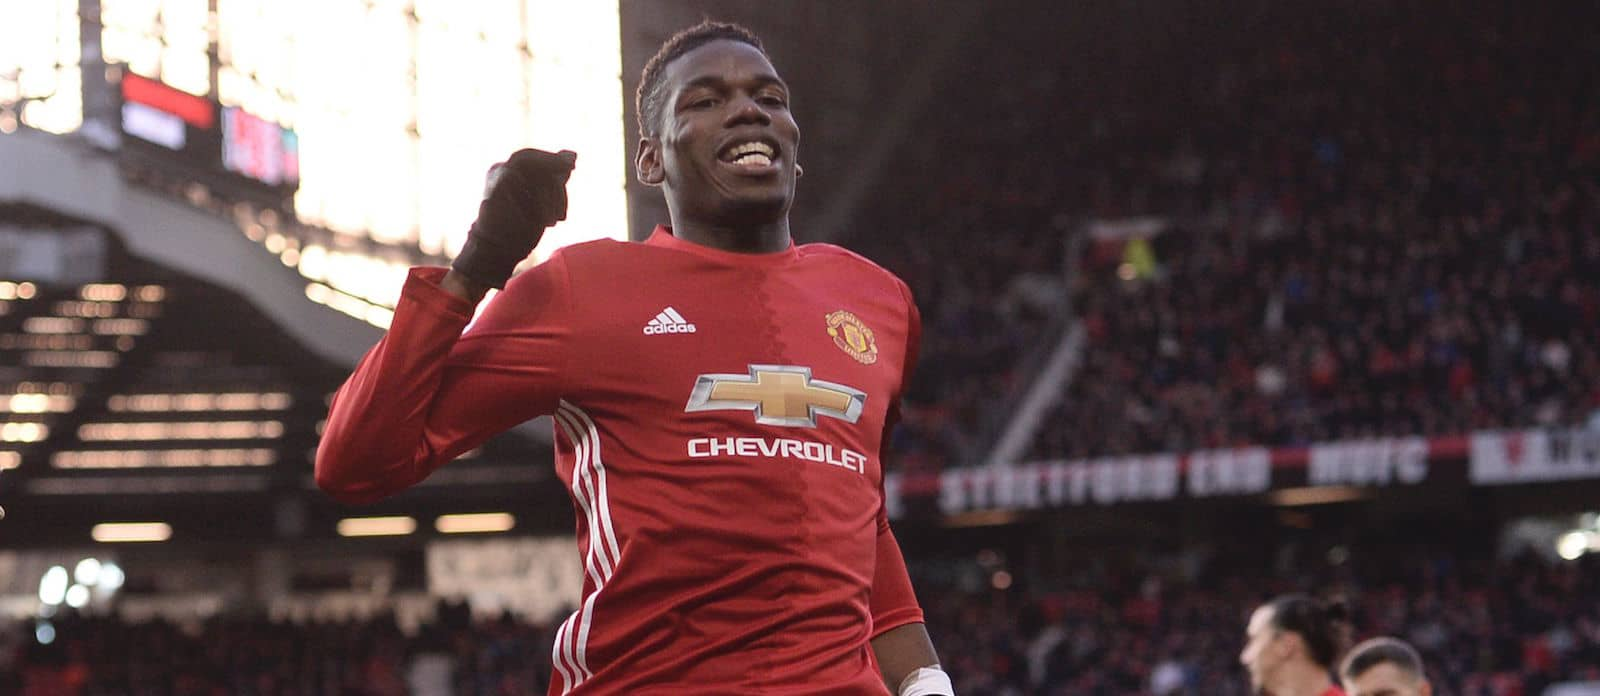 Steven Gerrard: Paul Pogba is one of the world's best midfielders…and it's scary